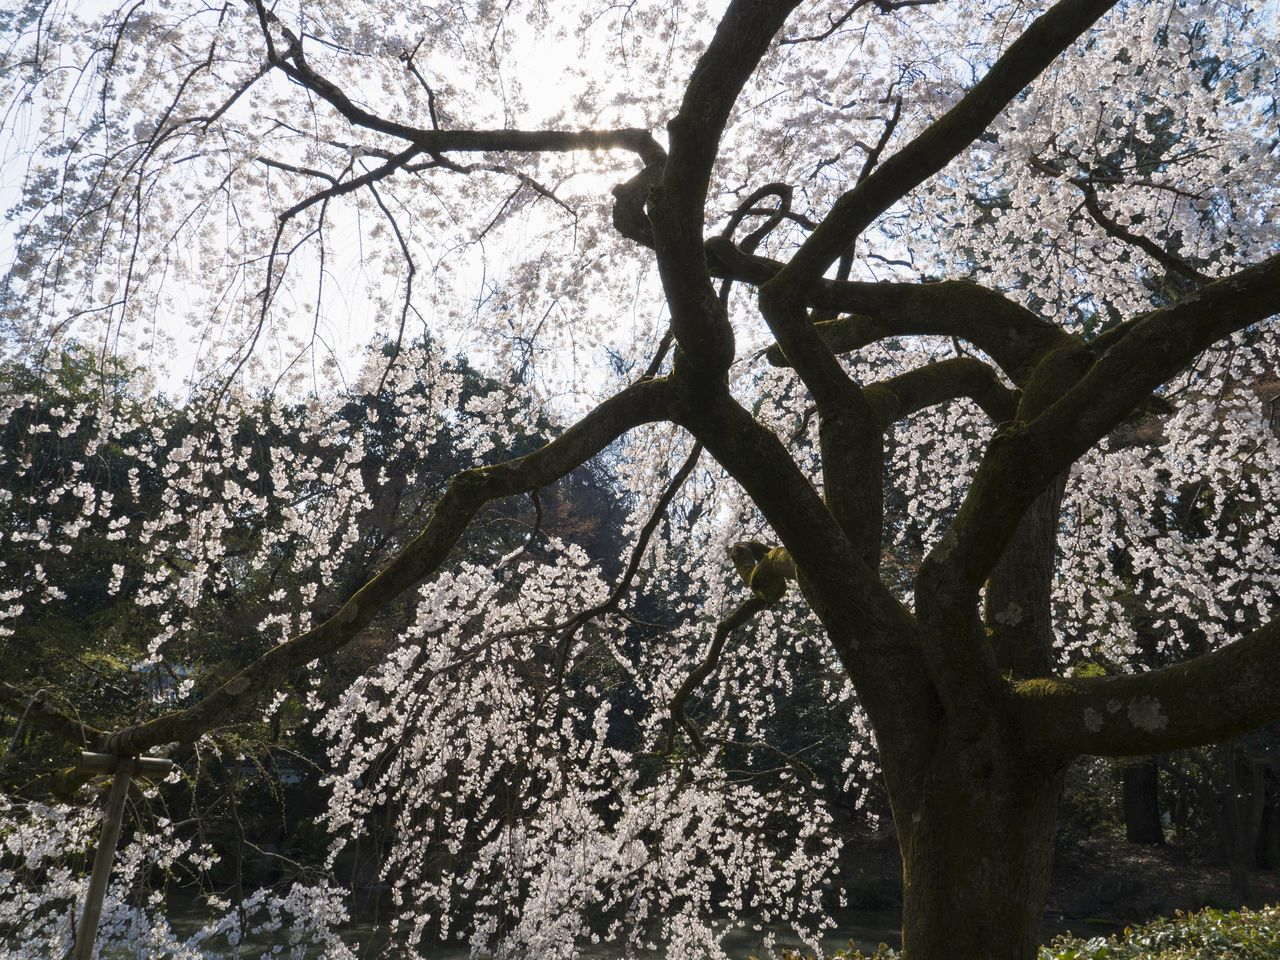 Seen from below, the lovely blossoms and delicate branches of the itozakura trees are enchanting.